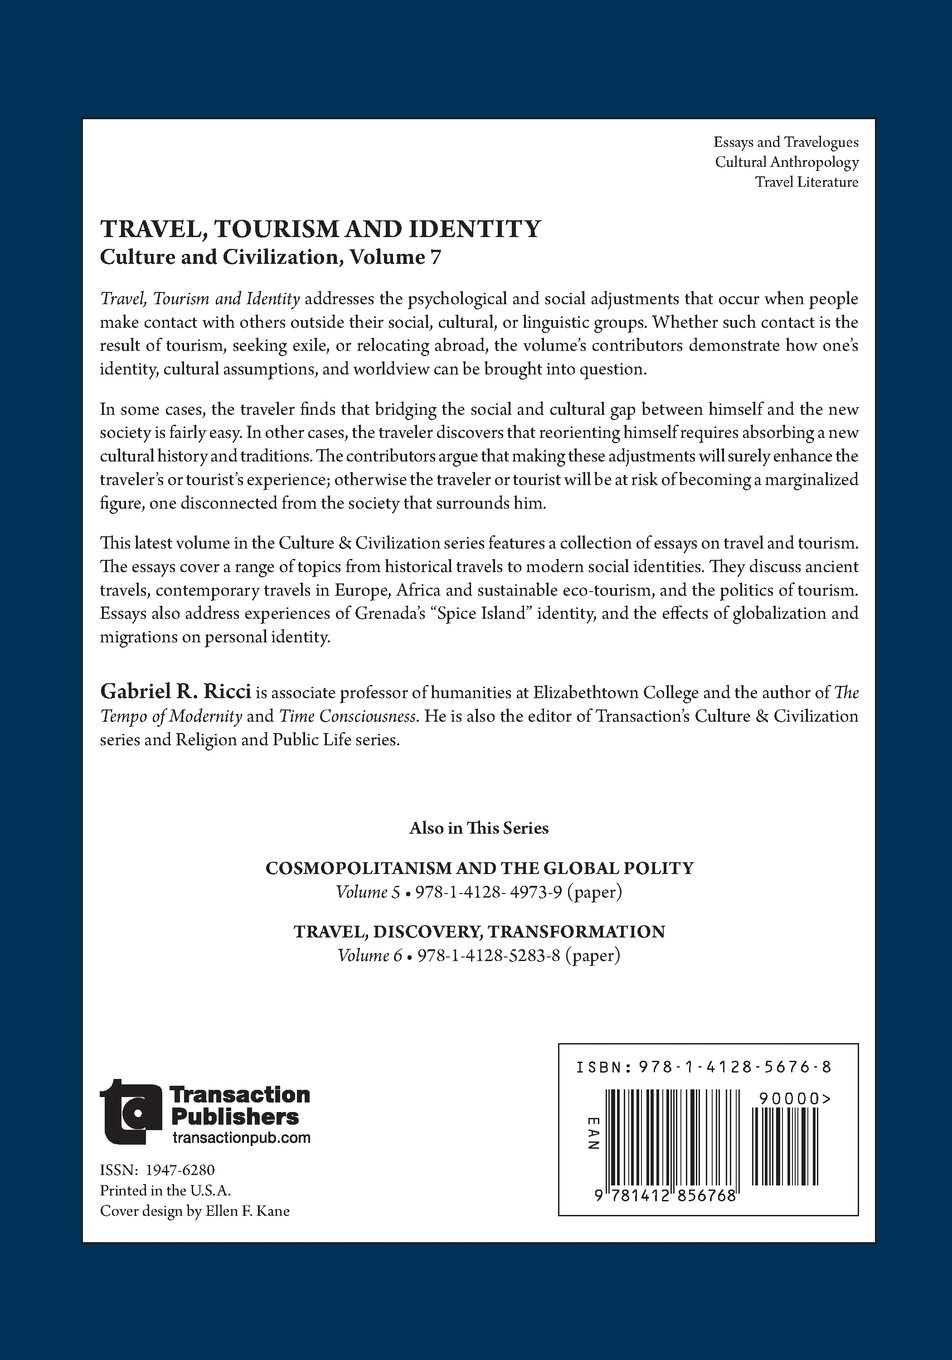 travel tourism and identity culture and civilization amazon travel tourism and identity culture and civilization amazon co uk gabriel r ricci 9781412856768 books